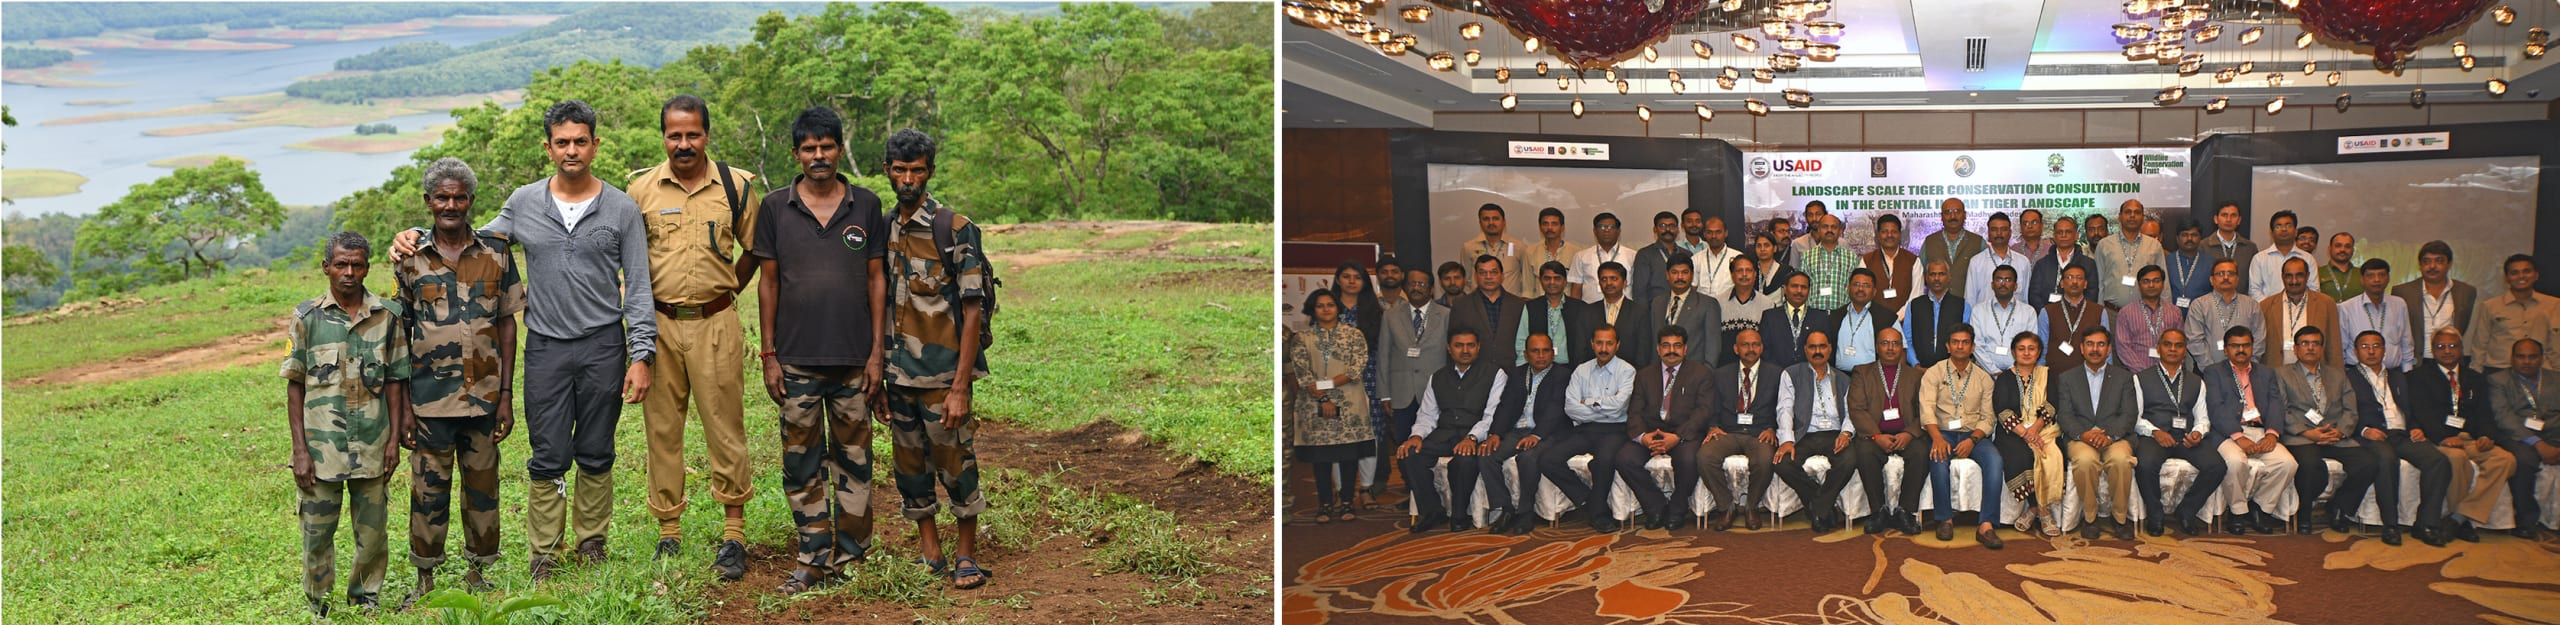 (Left) Anish Andheria with frontline forest staff at Parambikulam in 2017. Throughout his career Andheria has taken up the cause of forest guards, highlighting their struggles and needs. (Right) WCT organised a consultation on tiger conservation between Madhya Pradesh and Maharashtra forest departments. Photos courtesy: WCT